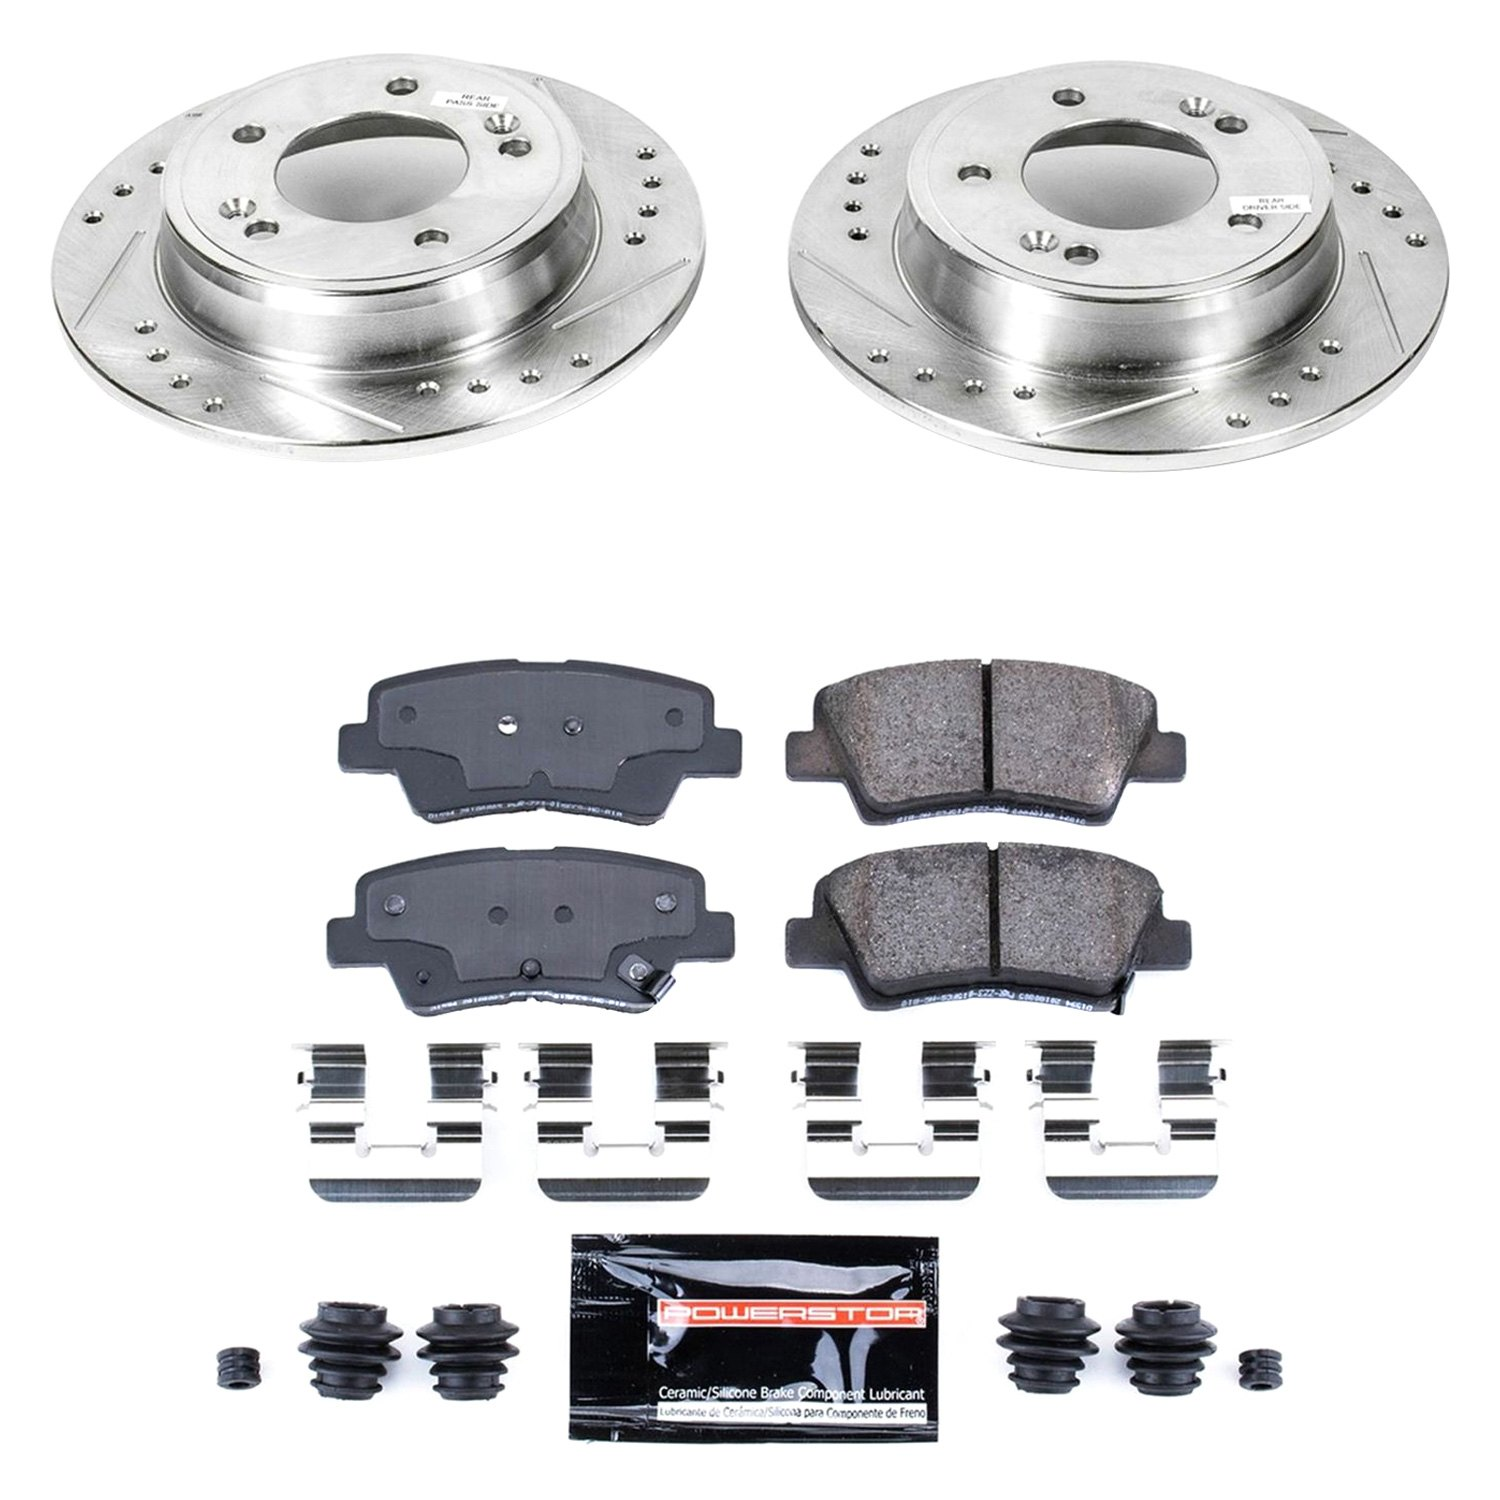 ACC Replacement Carpet Kit for 1997 to 2001 Toyota Camry 8251-Almond Plush Cut Pile 4 Door